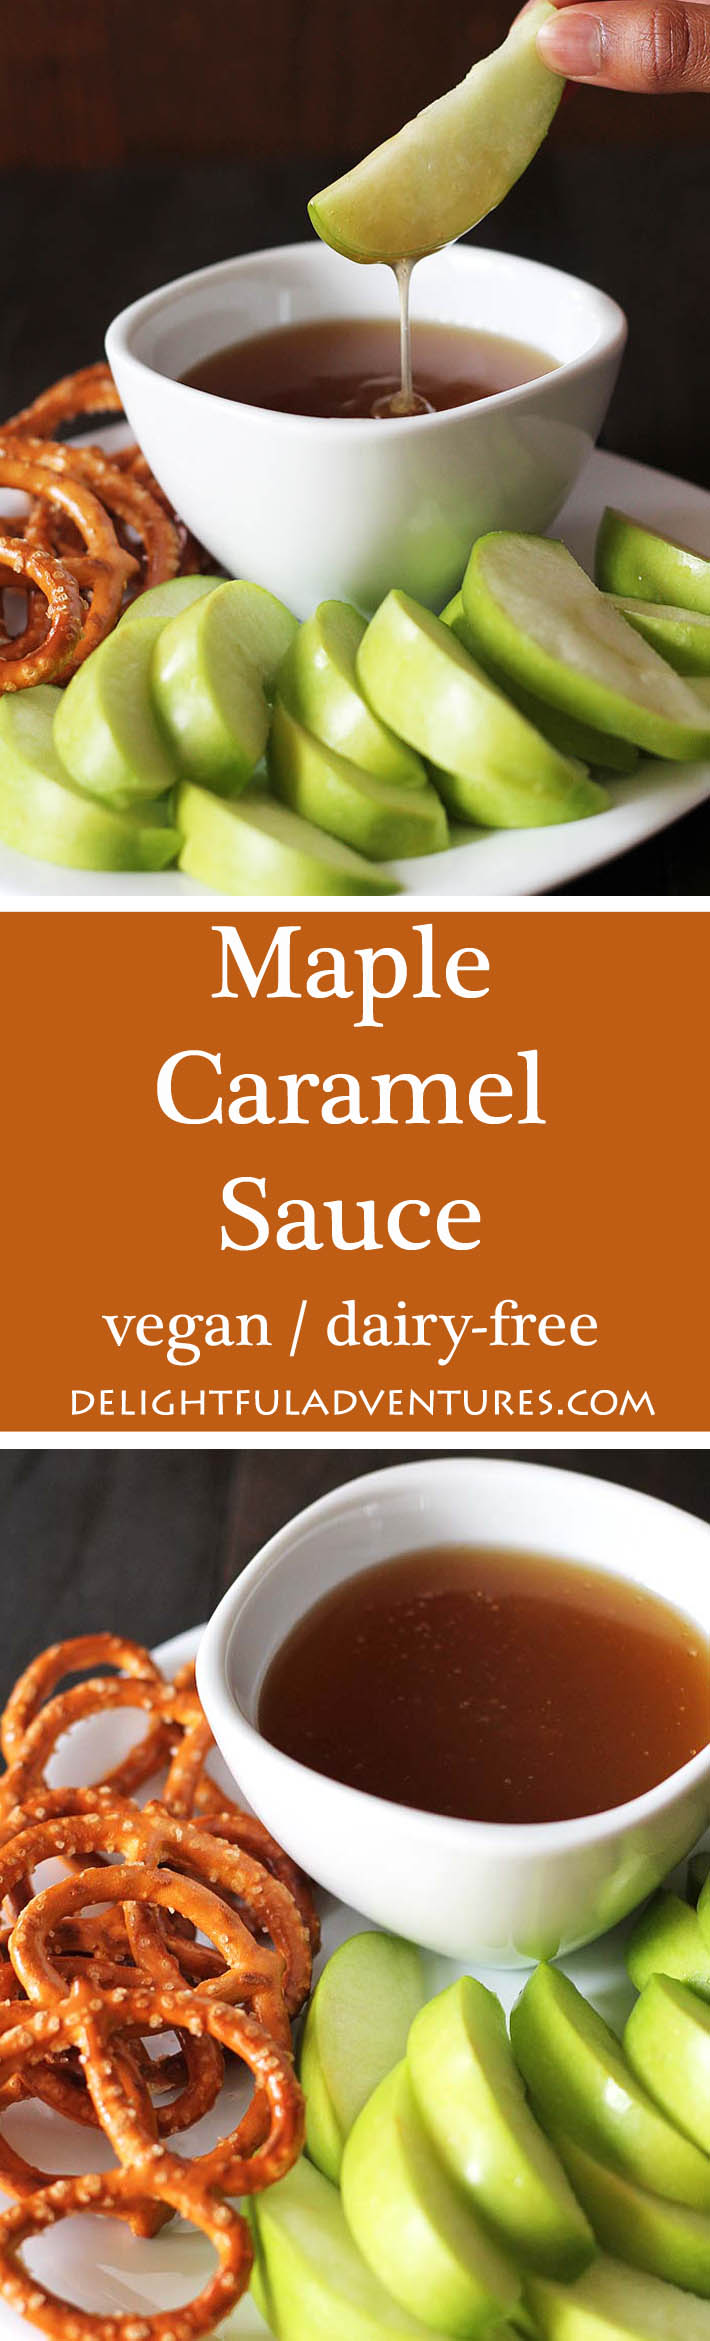 A quick, easy, and decadent maple caramel sauce that you'll want to put on everything from ice cream, sticky toffee pudding, pancakes, waffles and more! #vegancaramelsauce #dairyfreecaramelsauce #maplecaramelsauce #vegancaramel #veganglutenfree